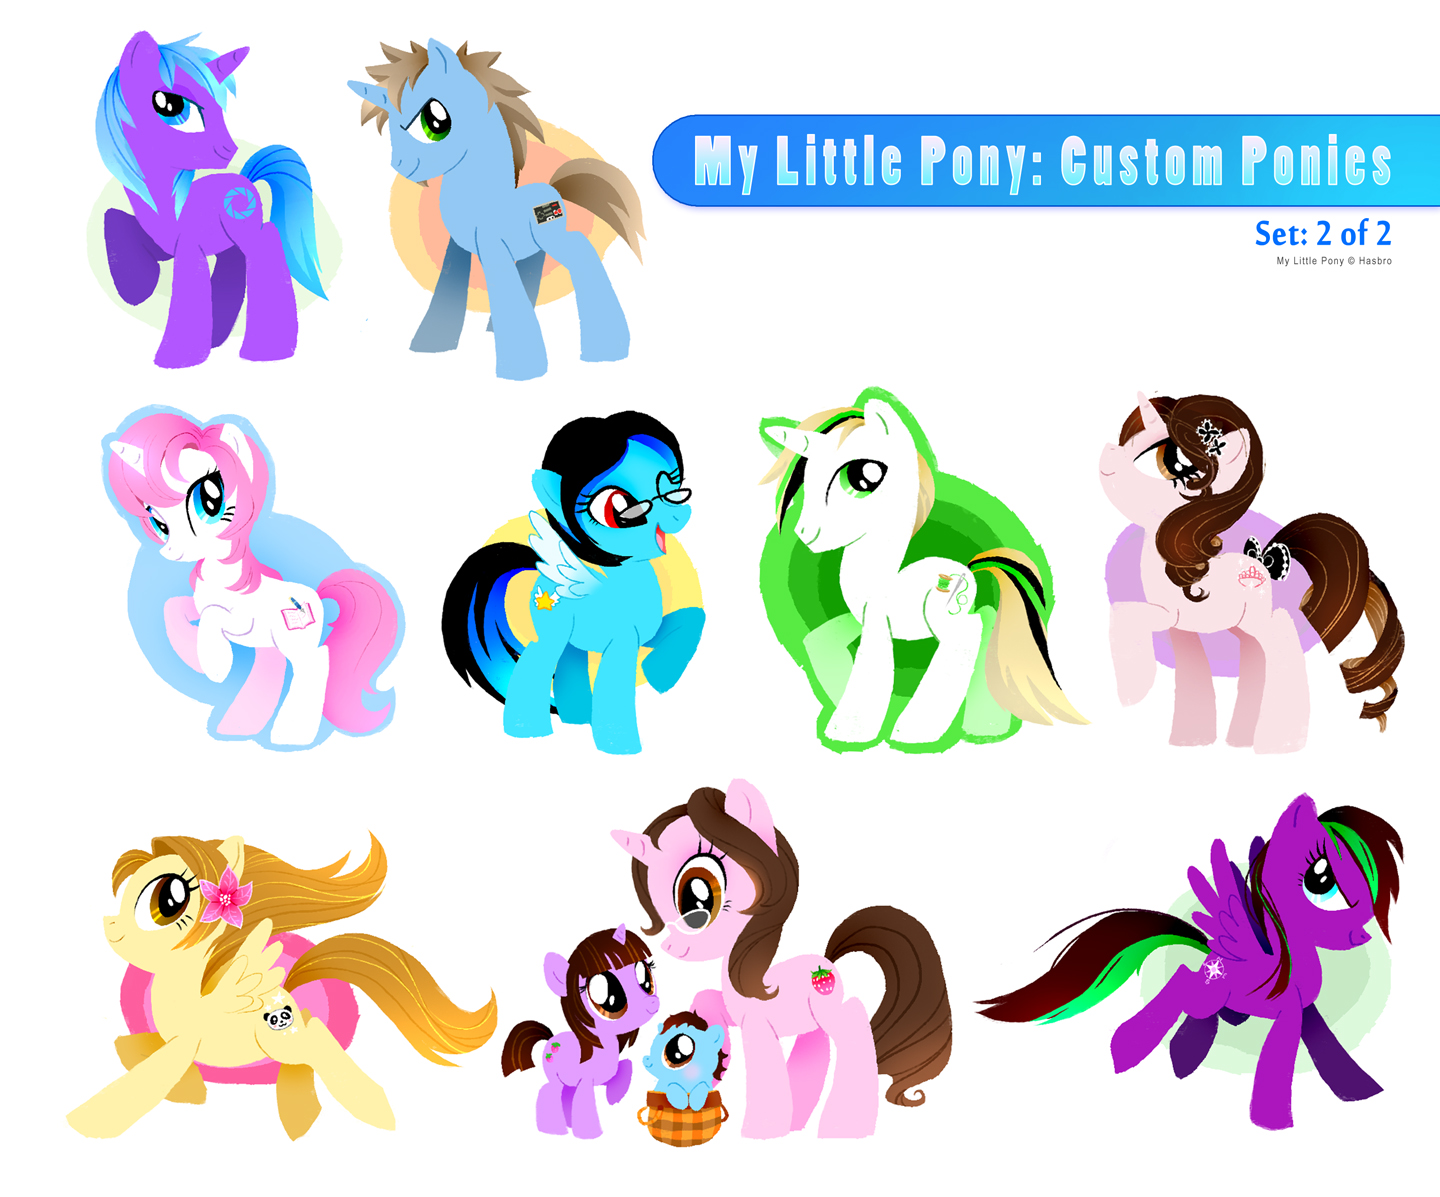 My Little Pony:Custom Ponies 2 by RinTau